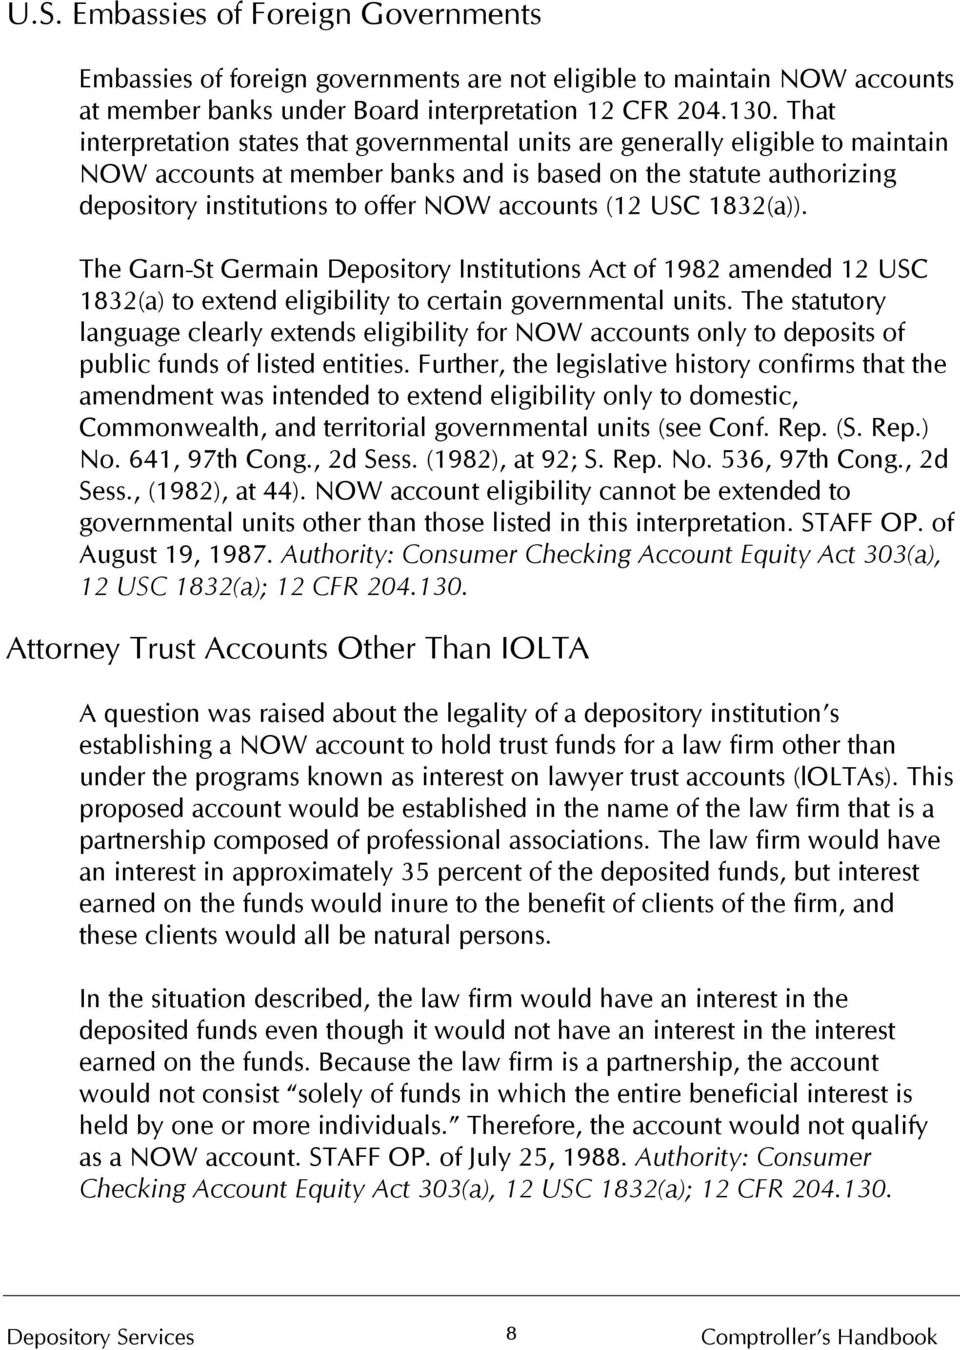 accounts (12 USC 1832(a)). The Garn-St Germain Depository Institutions Act of 1982 amended 12 USC 1832(a) to extend eligibility to certain governmental units.